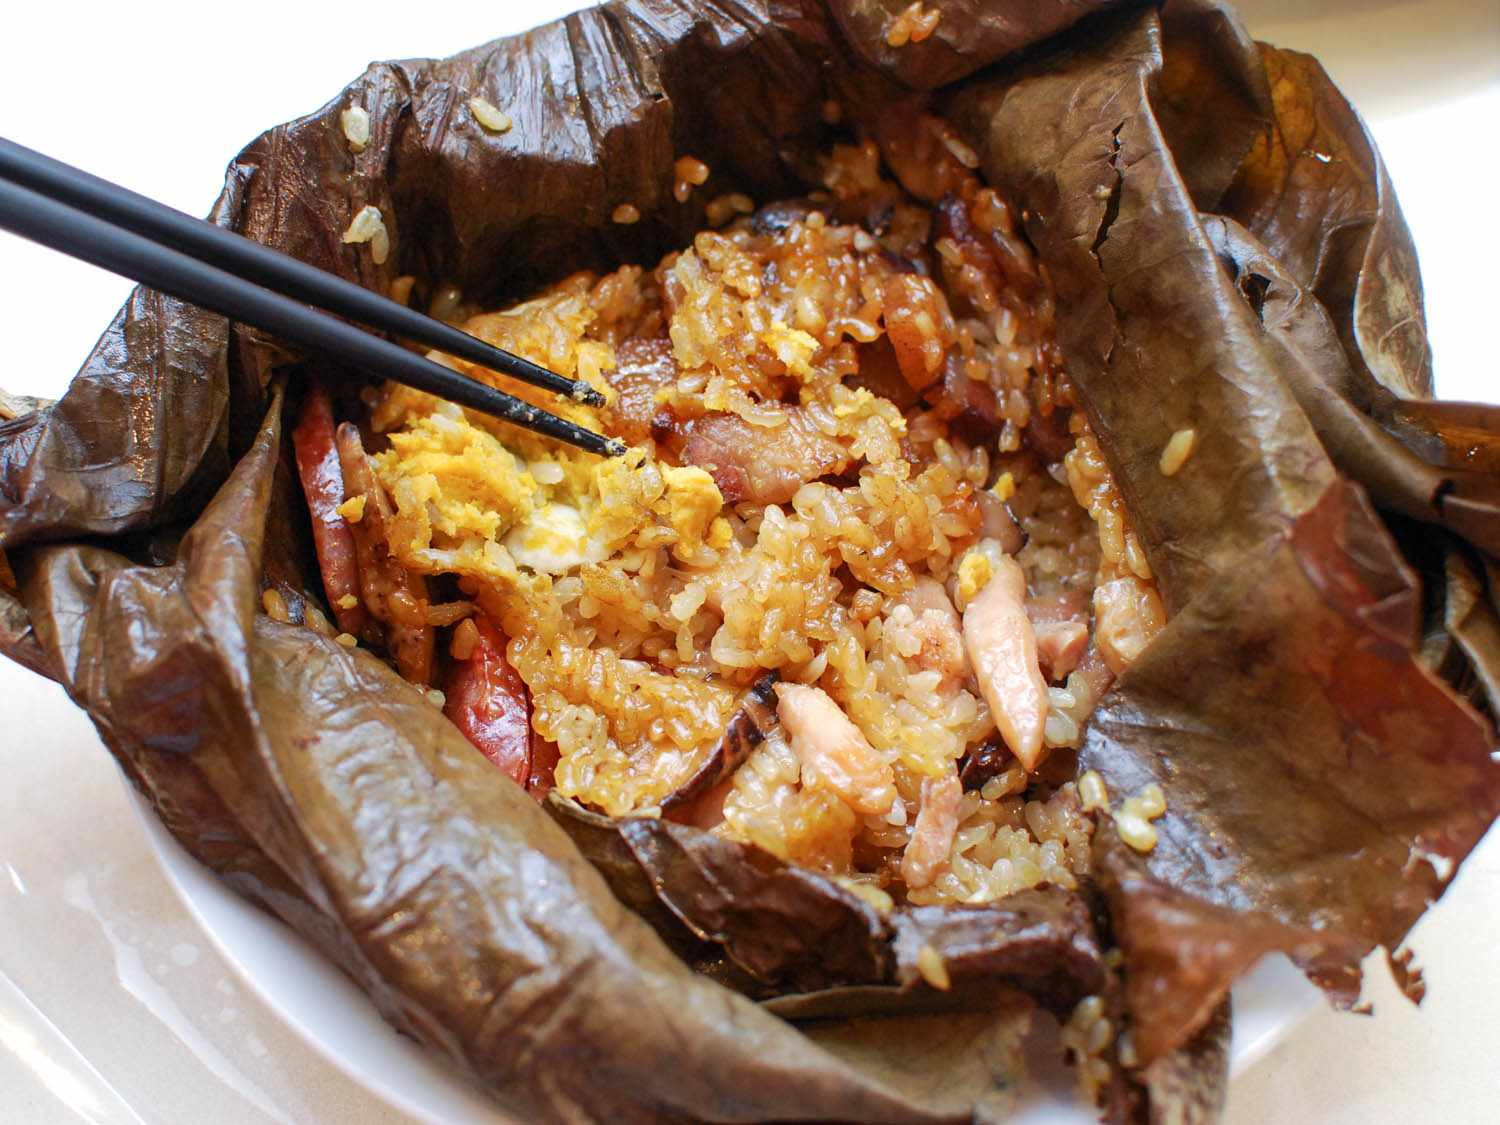 20150316-sticky-rice-with-lotus-leaf-shao-zhong-31.jpg